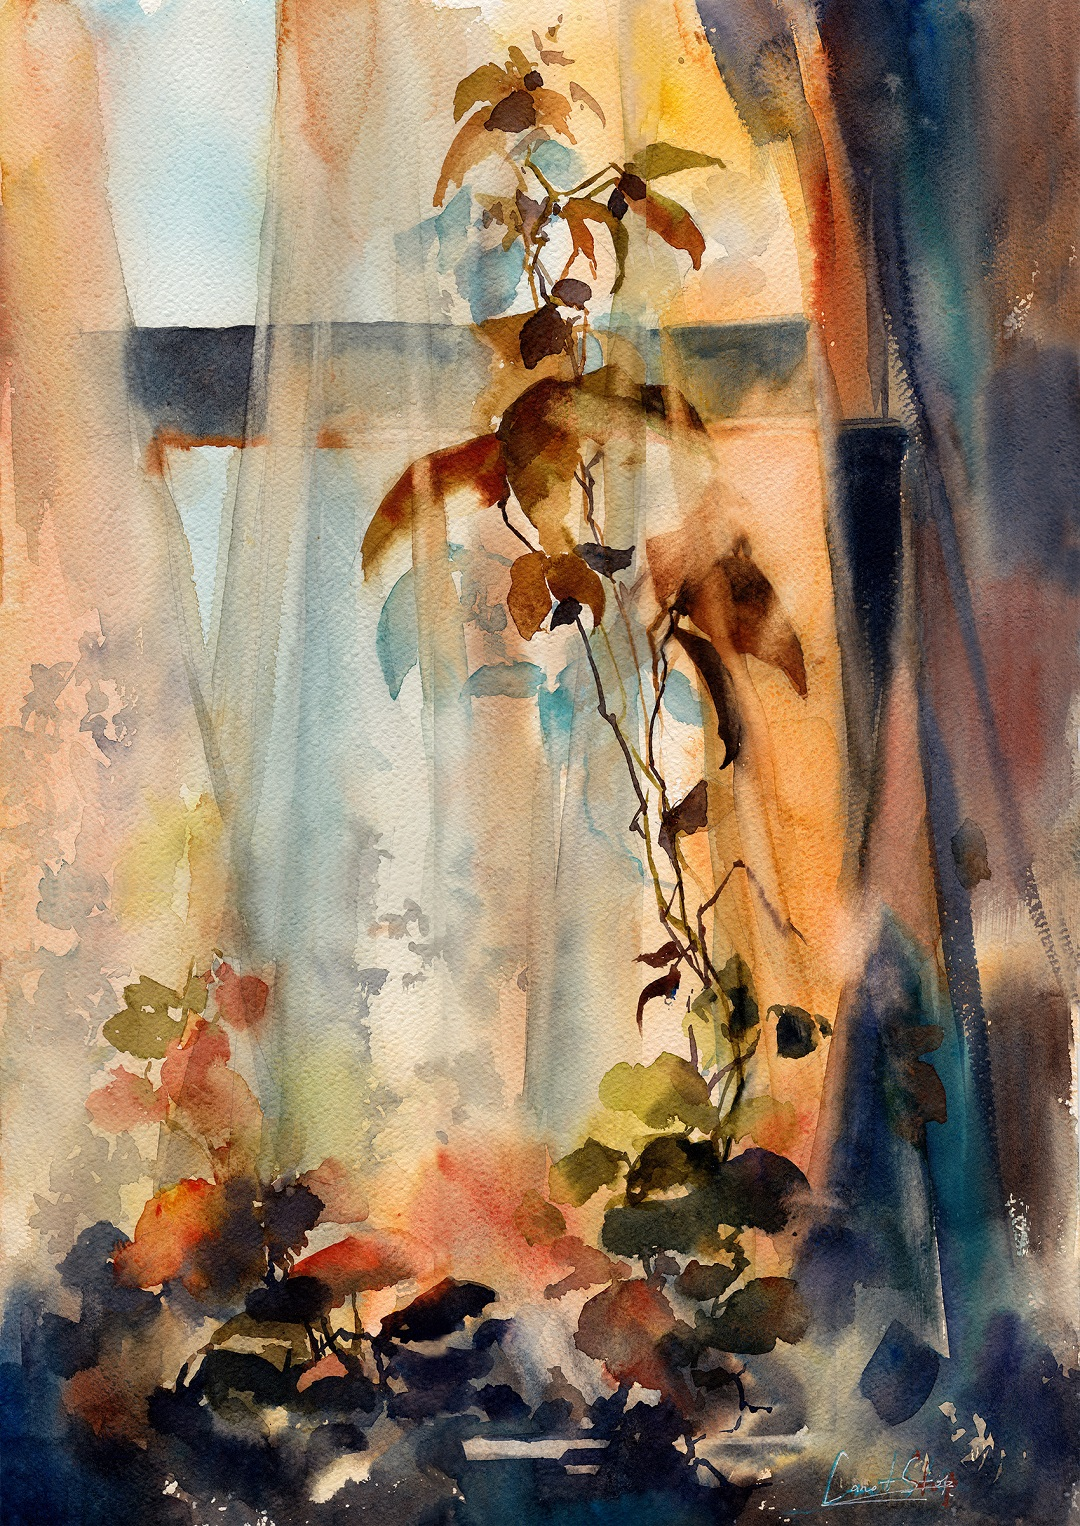 'Morning Through Curtains' Sophie Rodionov Watercolour on Fabriano Rough 140lb, 12 x 18""